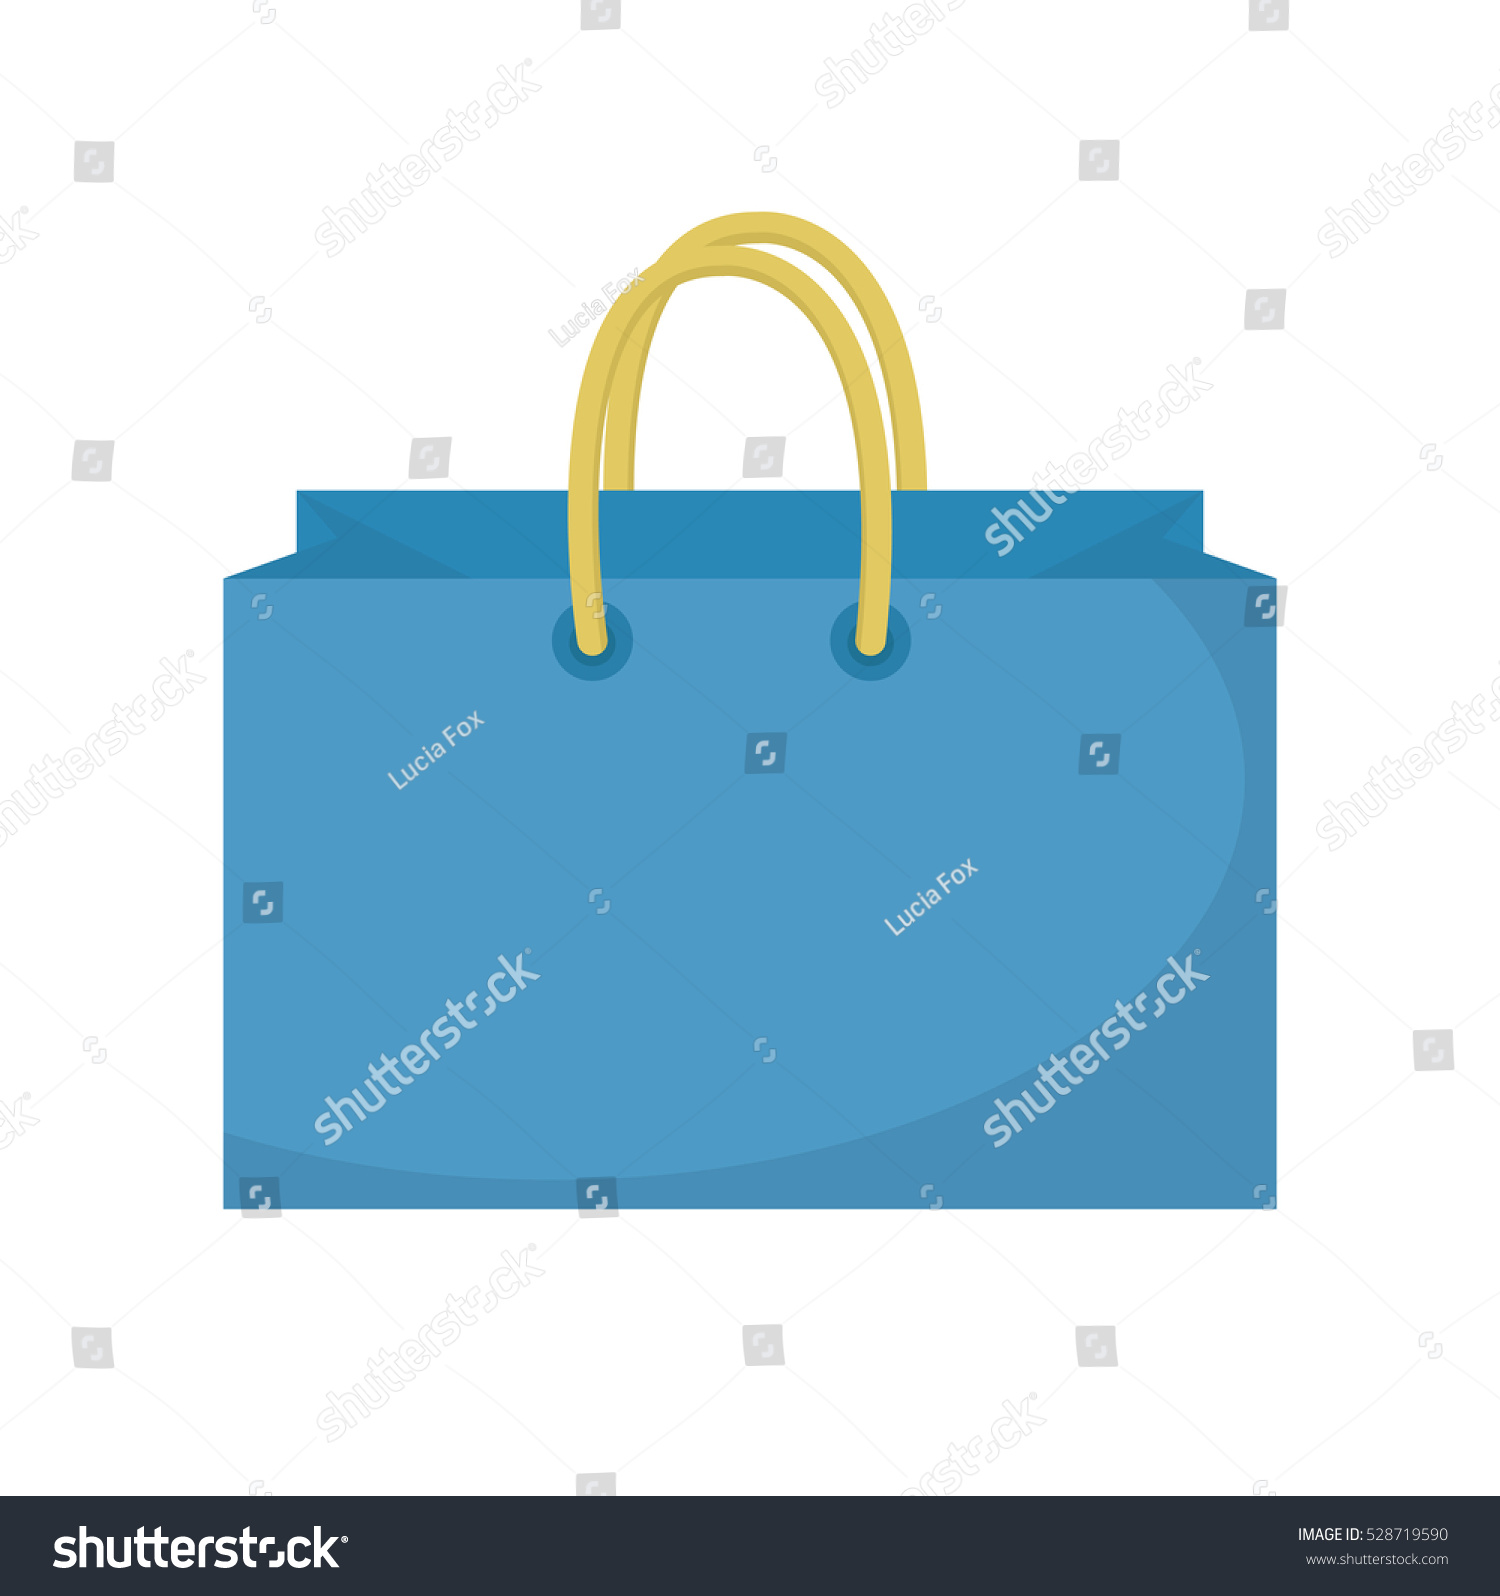 565df9d279 Shopping bag icon flat style. Colorful shopping bag sign symbol. Paper bags  isolated on